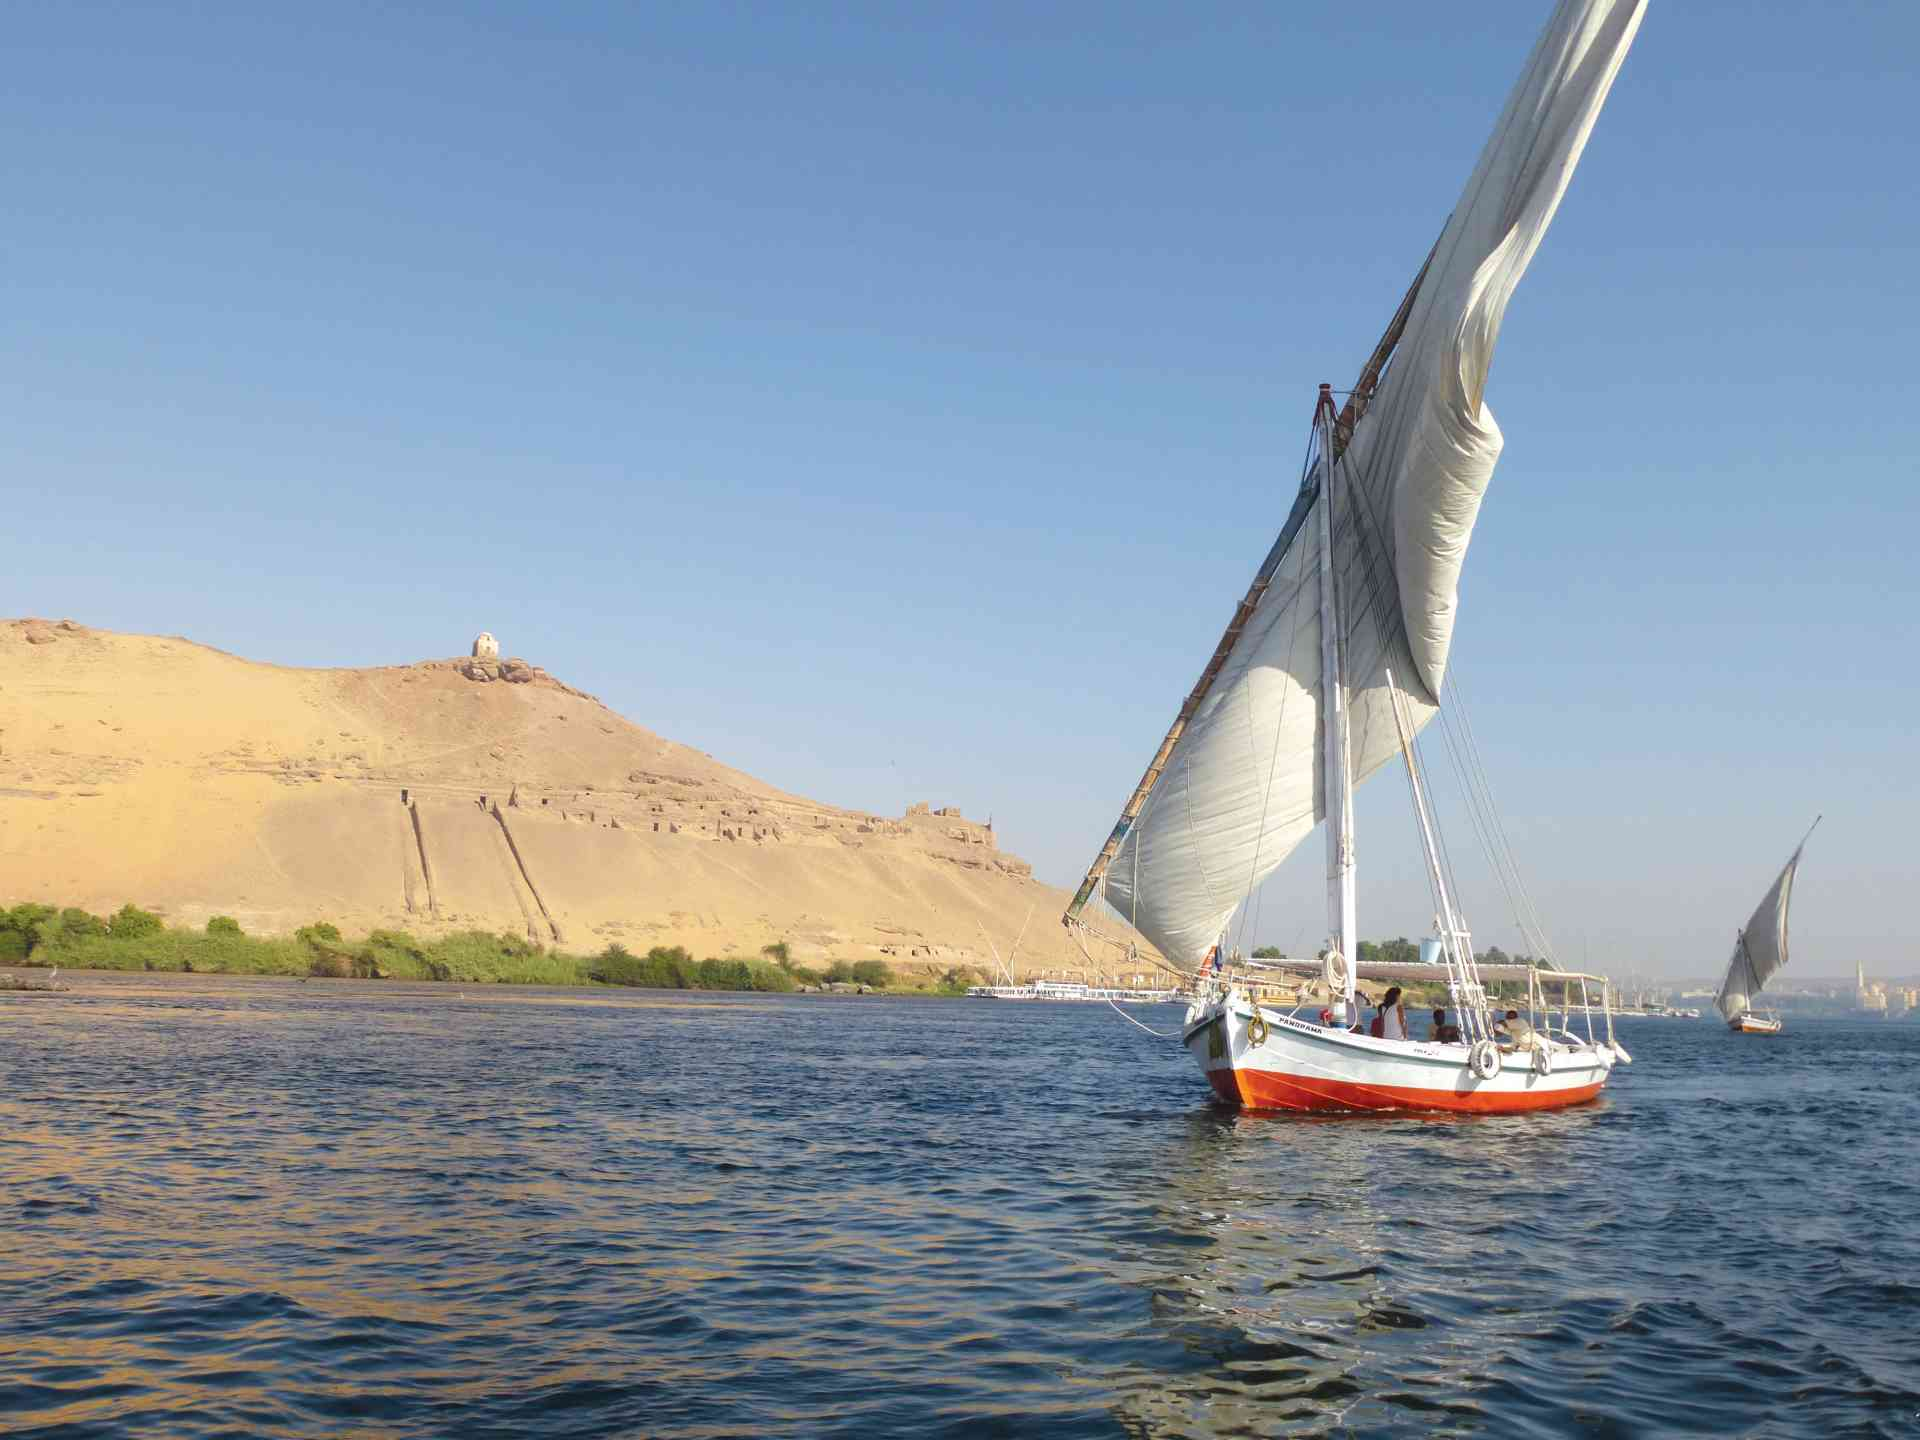 Felucca on the Nile, Egypt by Marion Bunnik